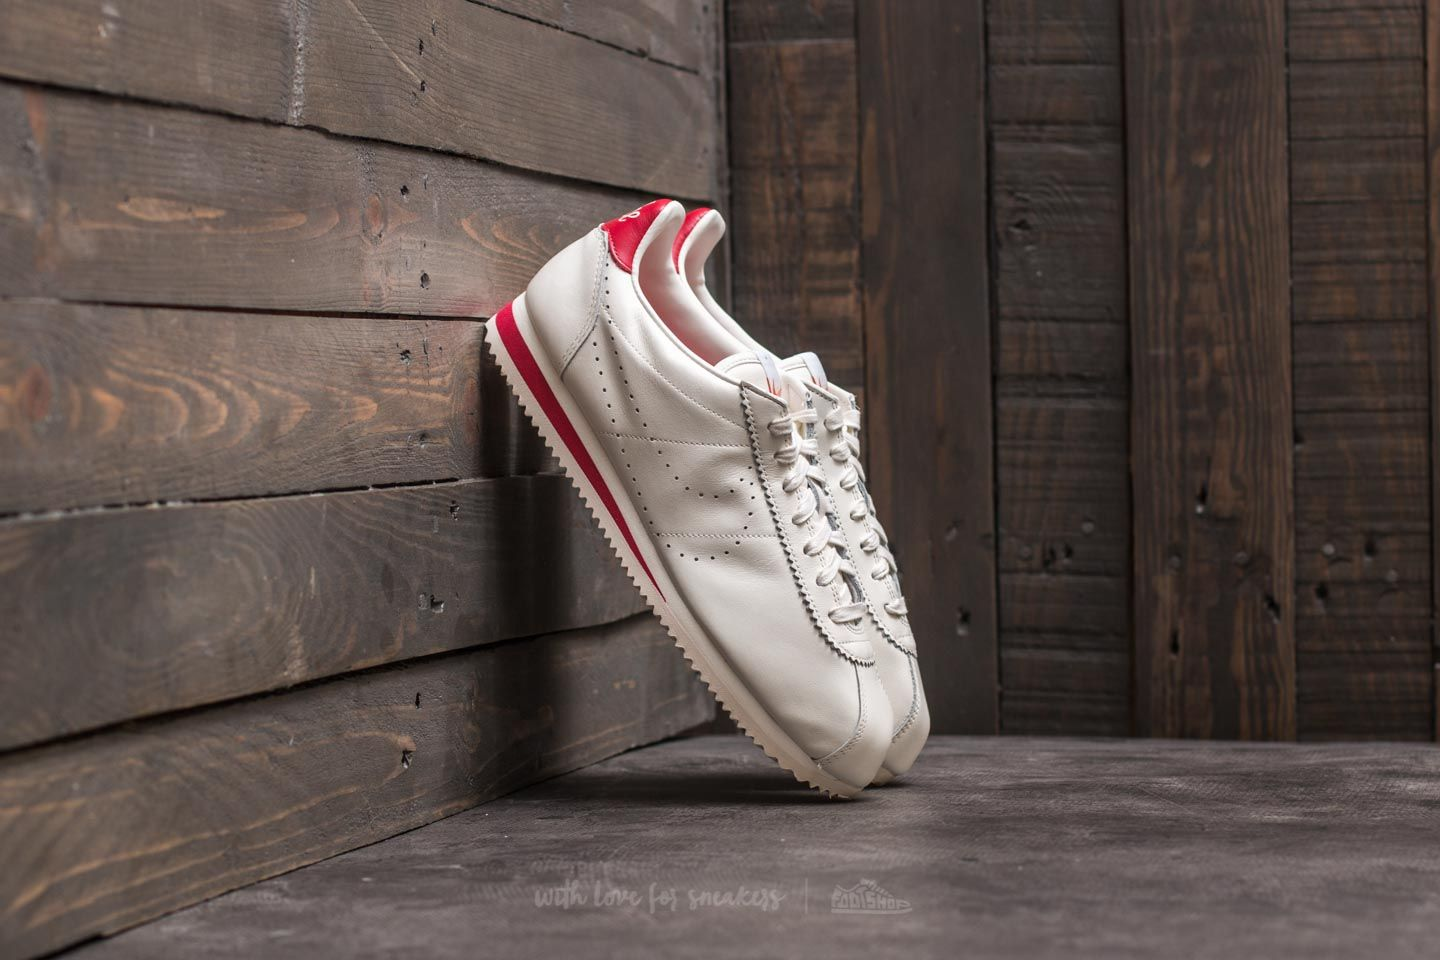 Nike Classic Cortez Leather Premium Sail/ Sail/Gzm Red